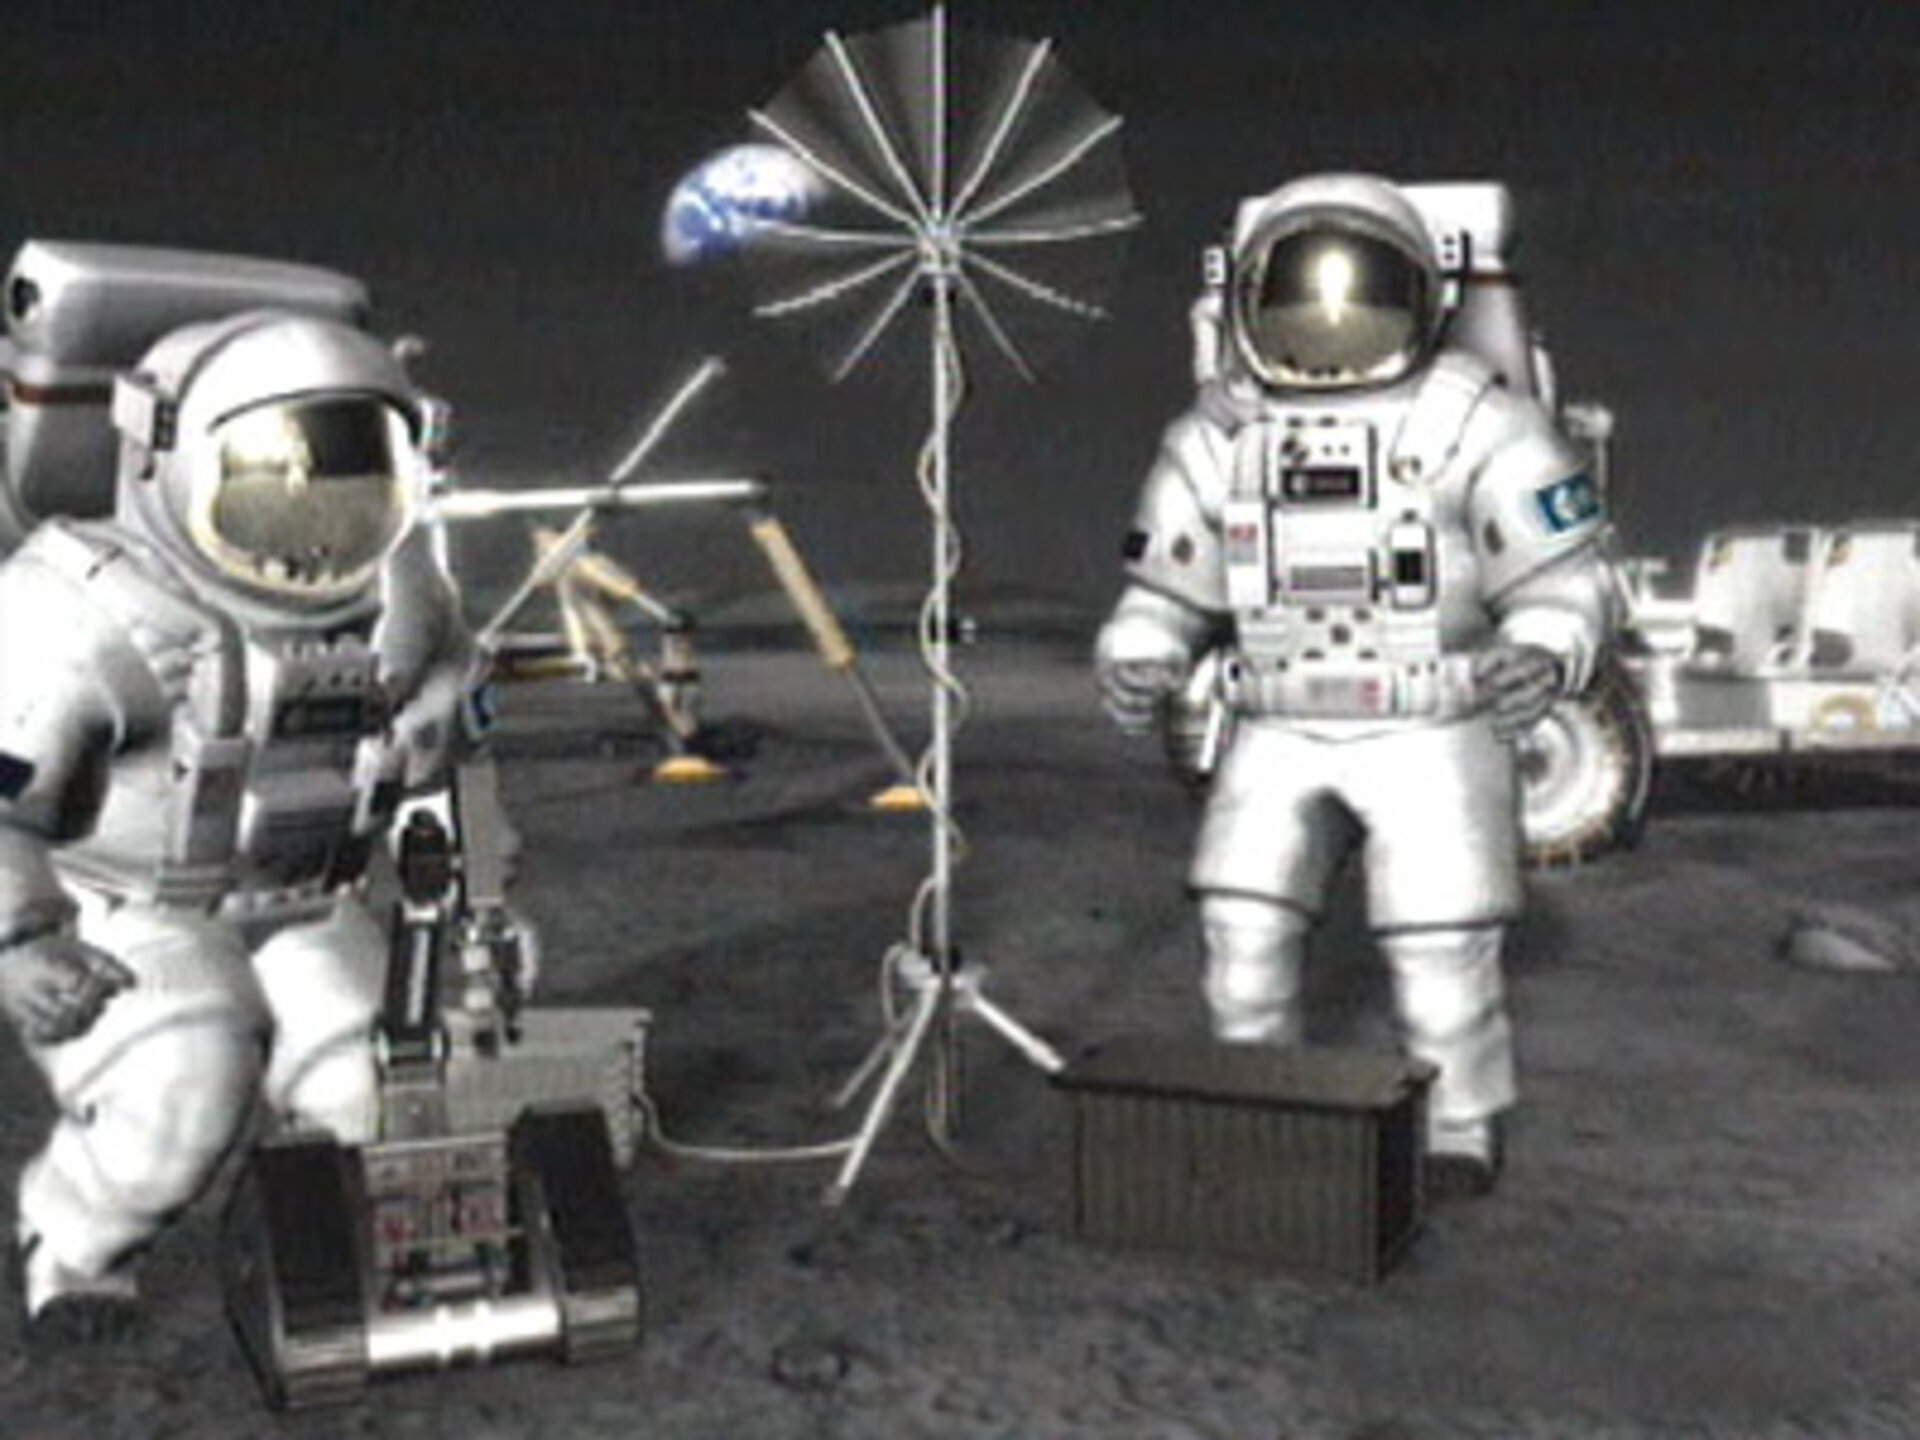 A study to identify potential European contributions to the exploration of the Moon